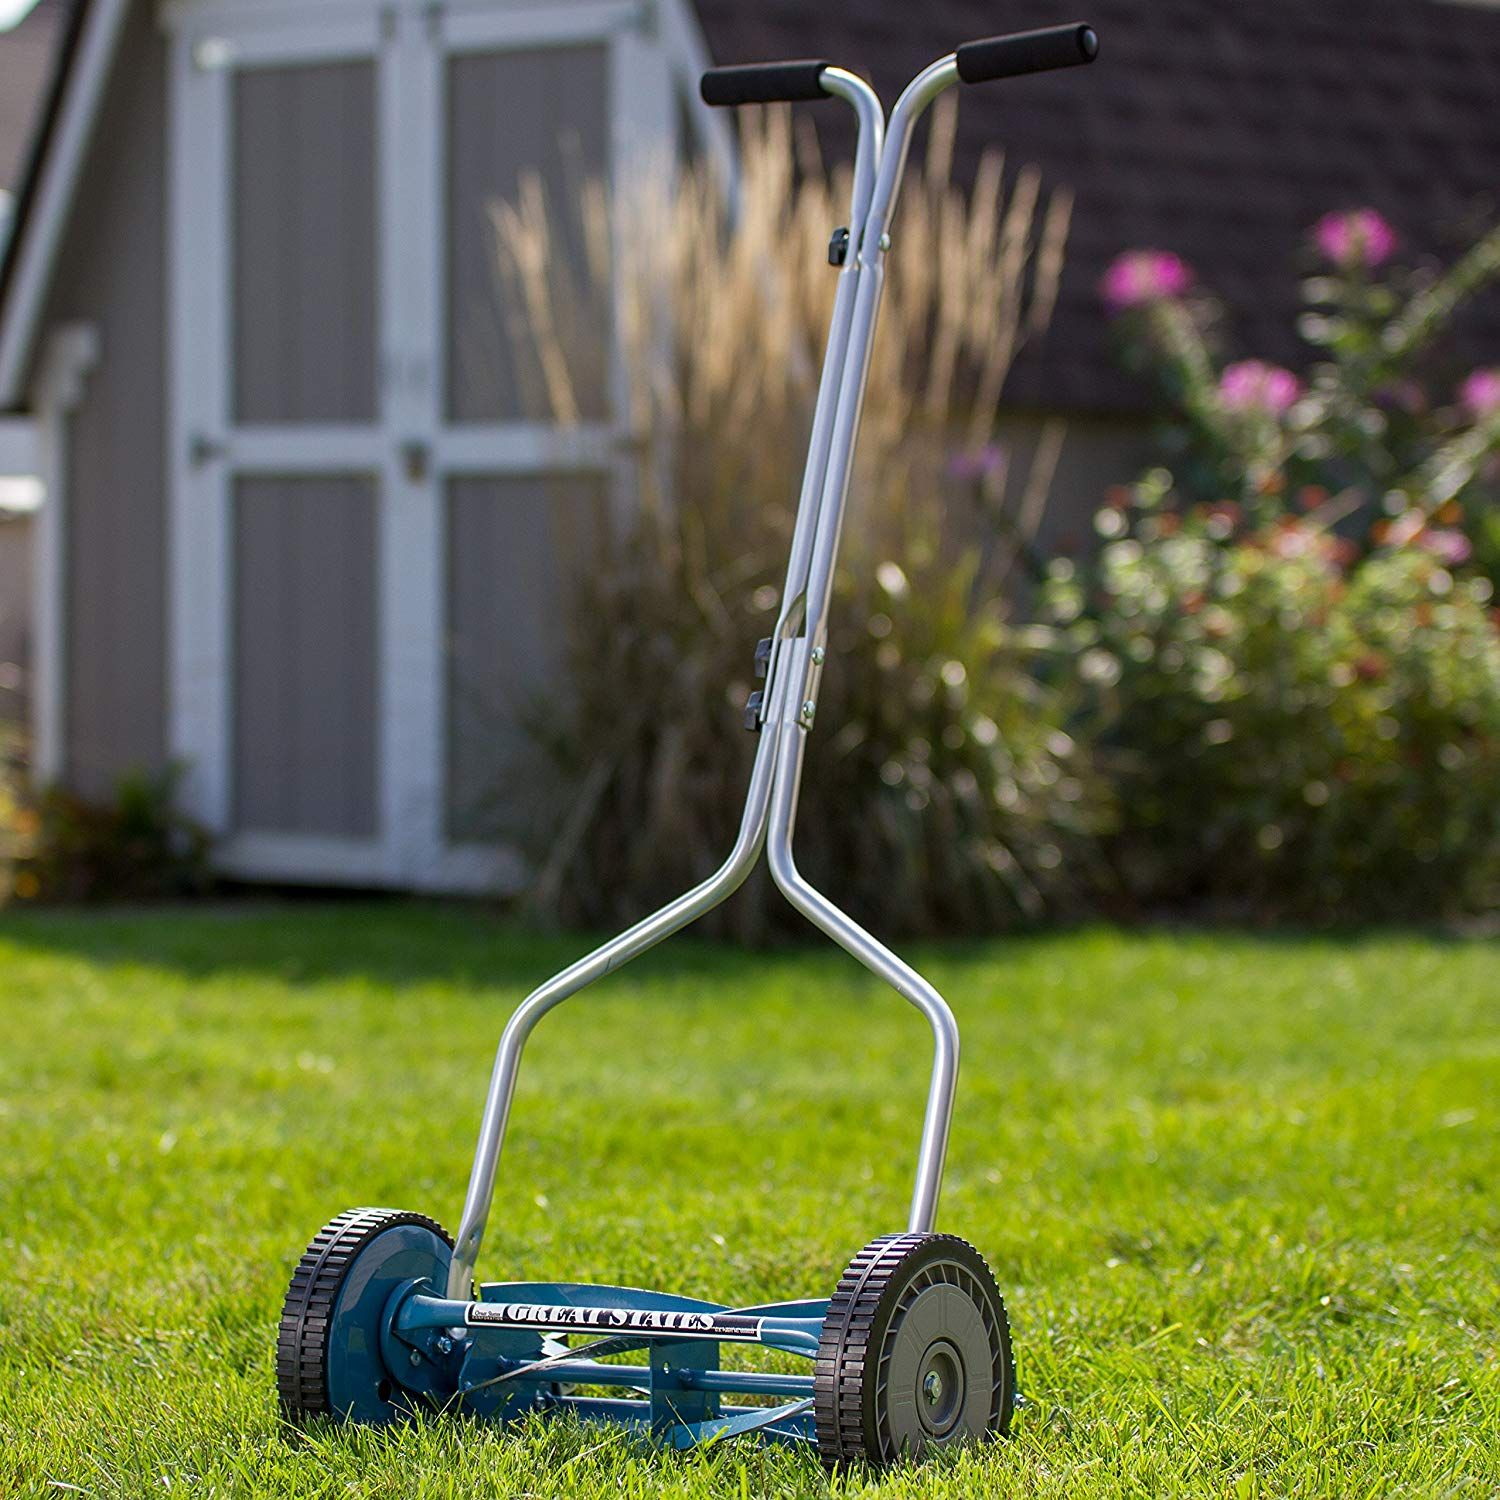 Great States 204 14 Hand Reel 14 Inch Push Lawn Mower Best Lawn Mower Lawn Mower Push Lawn Mower